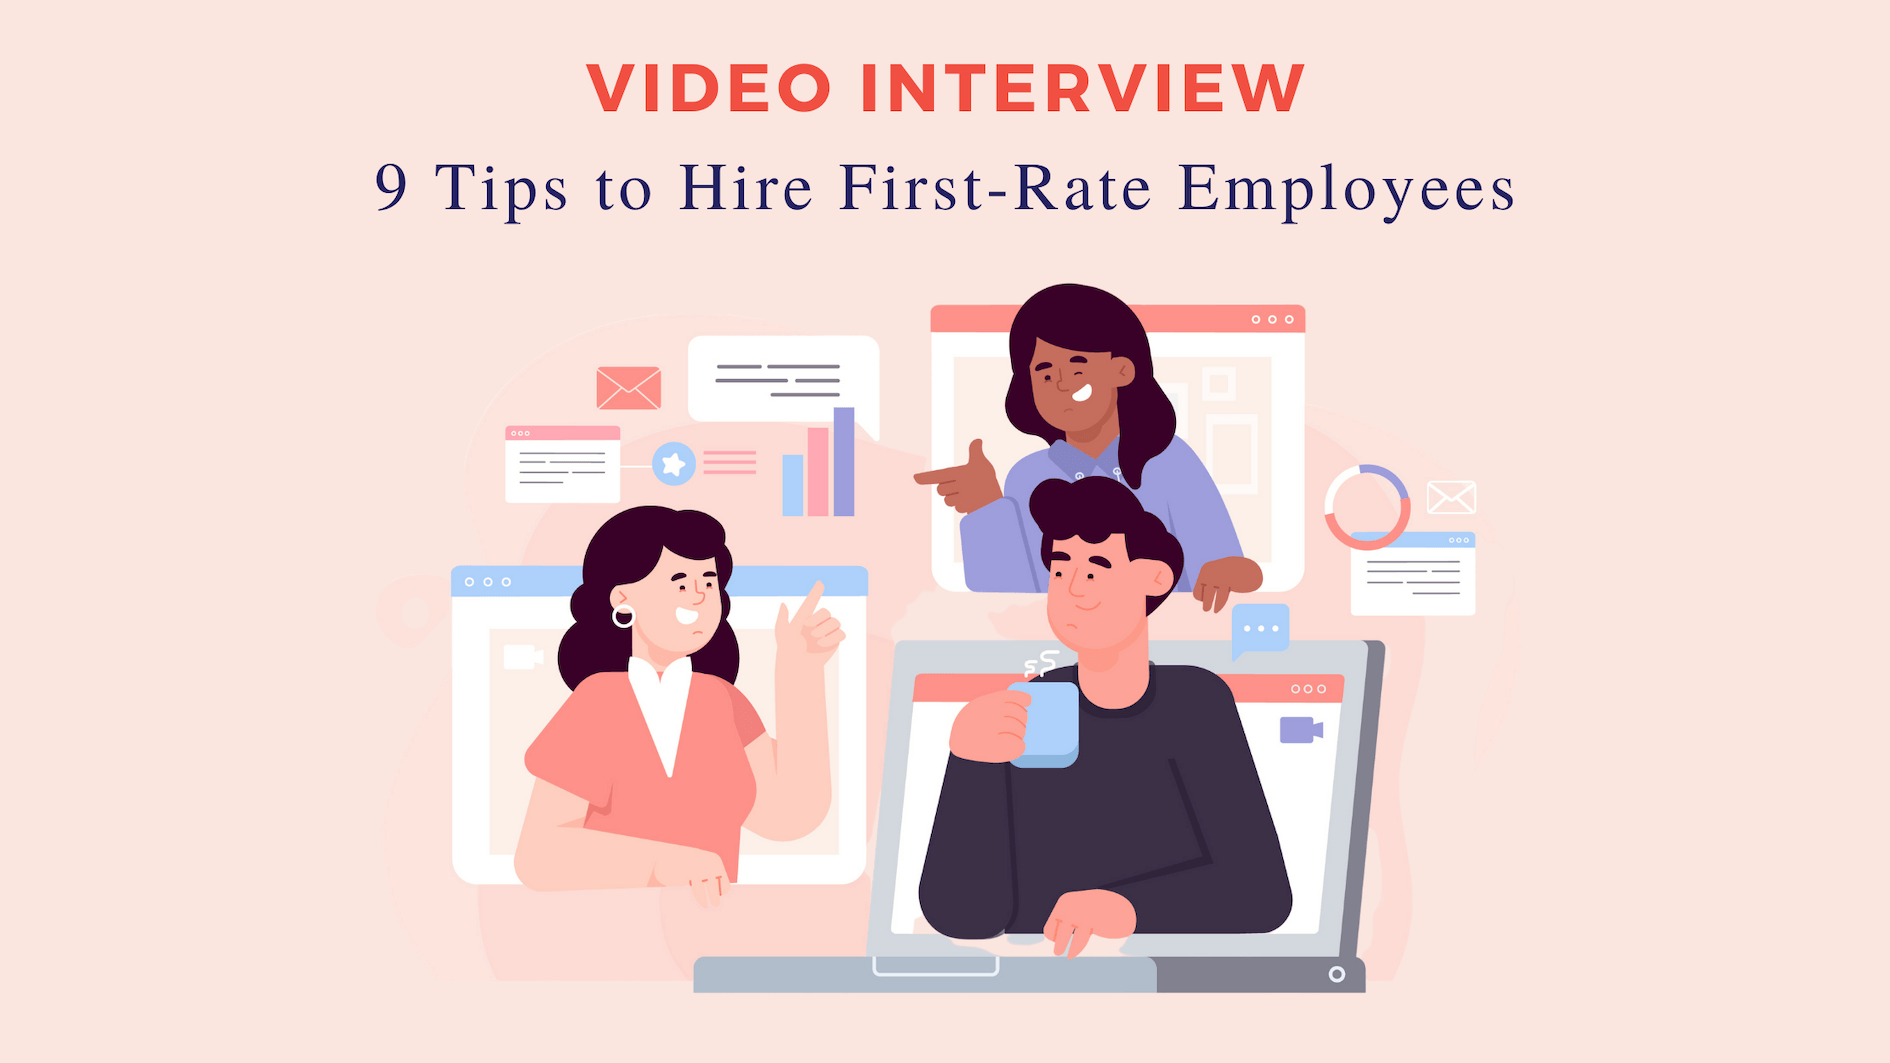 Video Interview: 9 Tips to Hire First-Rate Employees